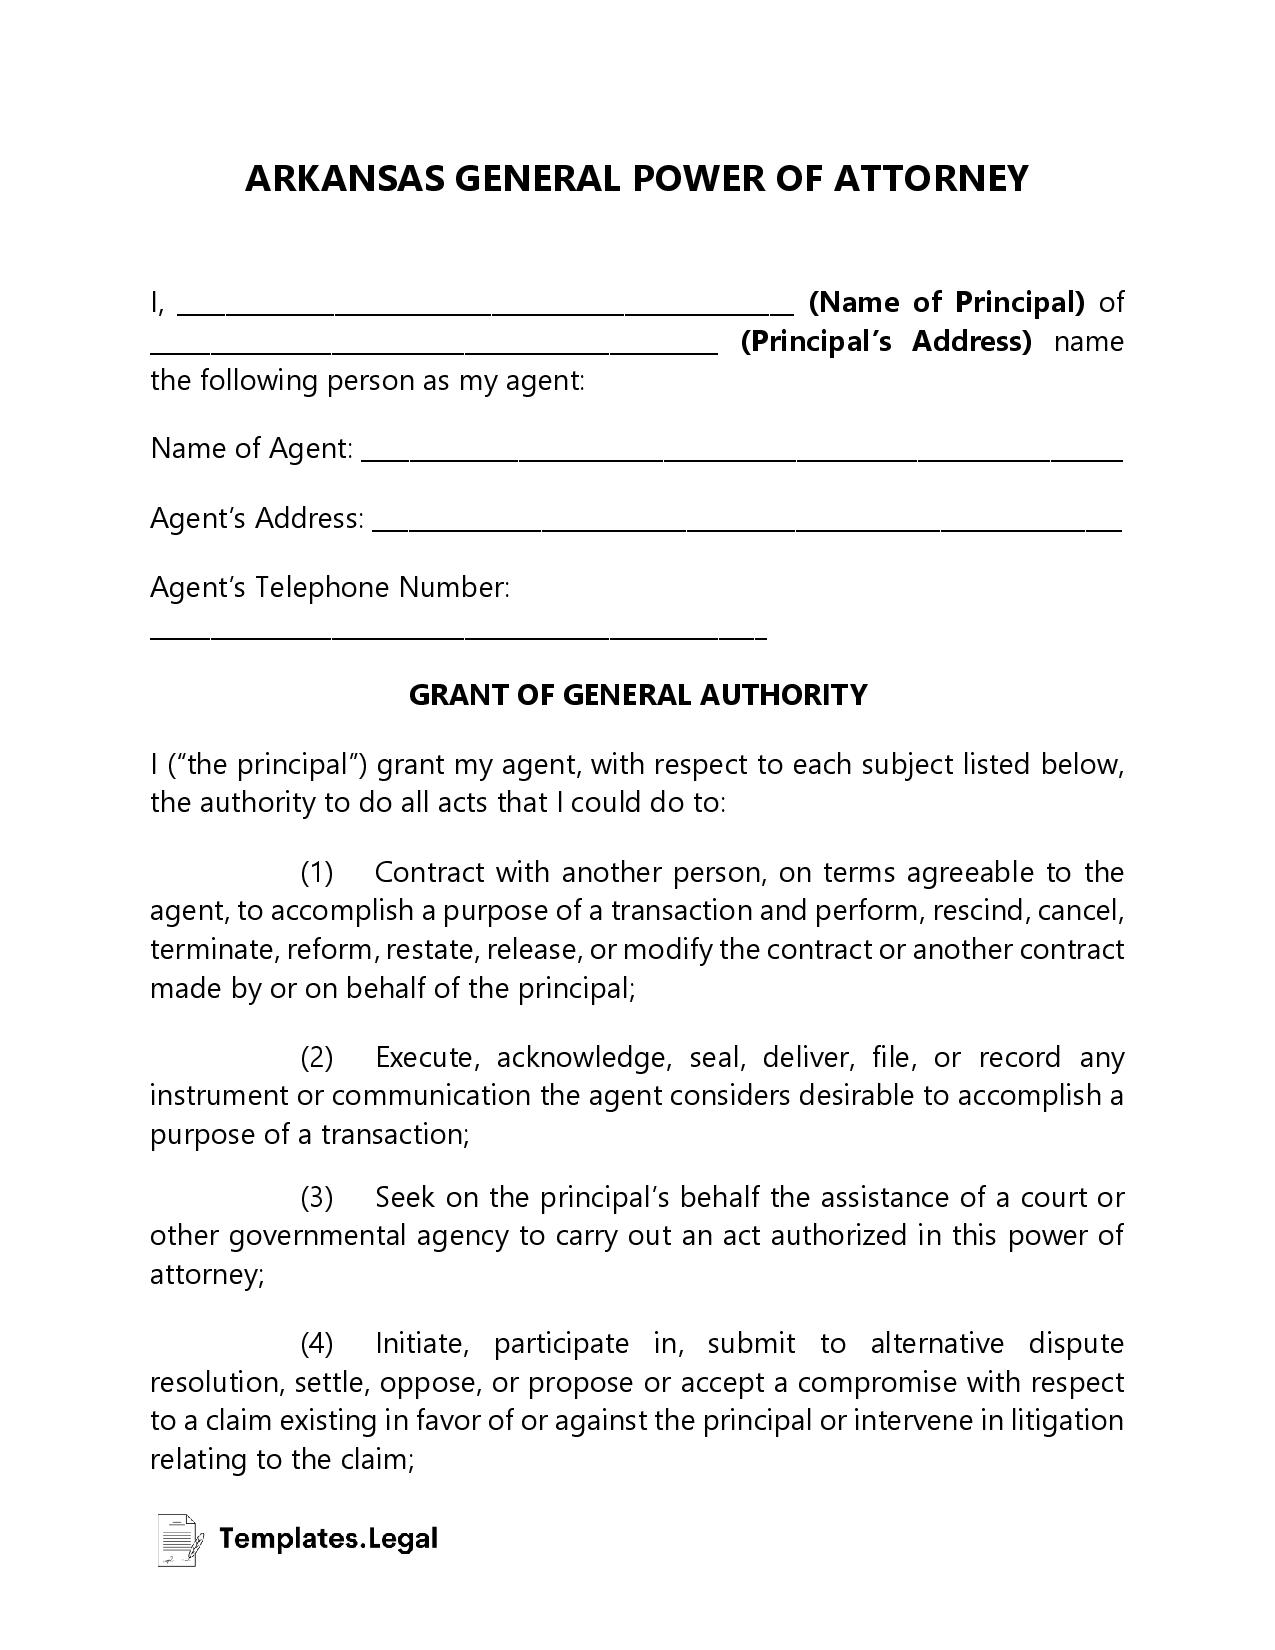 Arkansas General Power of Attorney - Templates.Legal